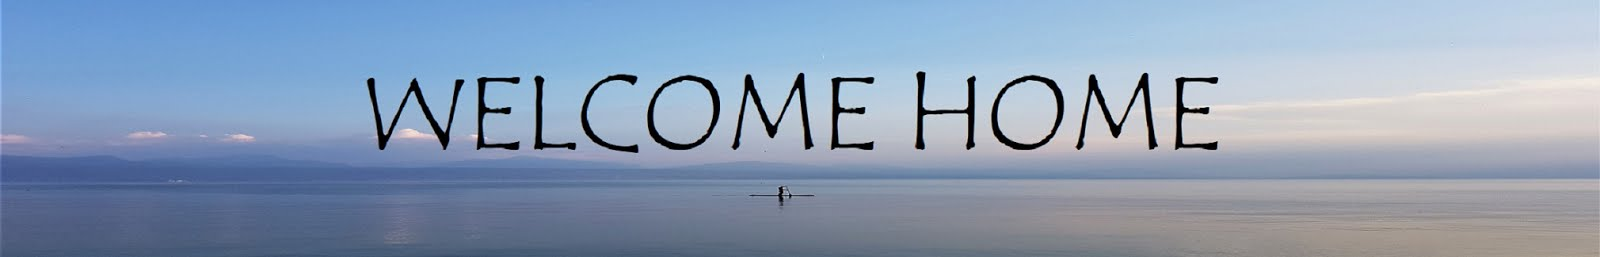 WELCOME, HOME